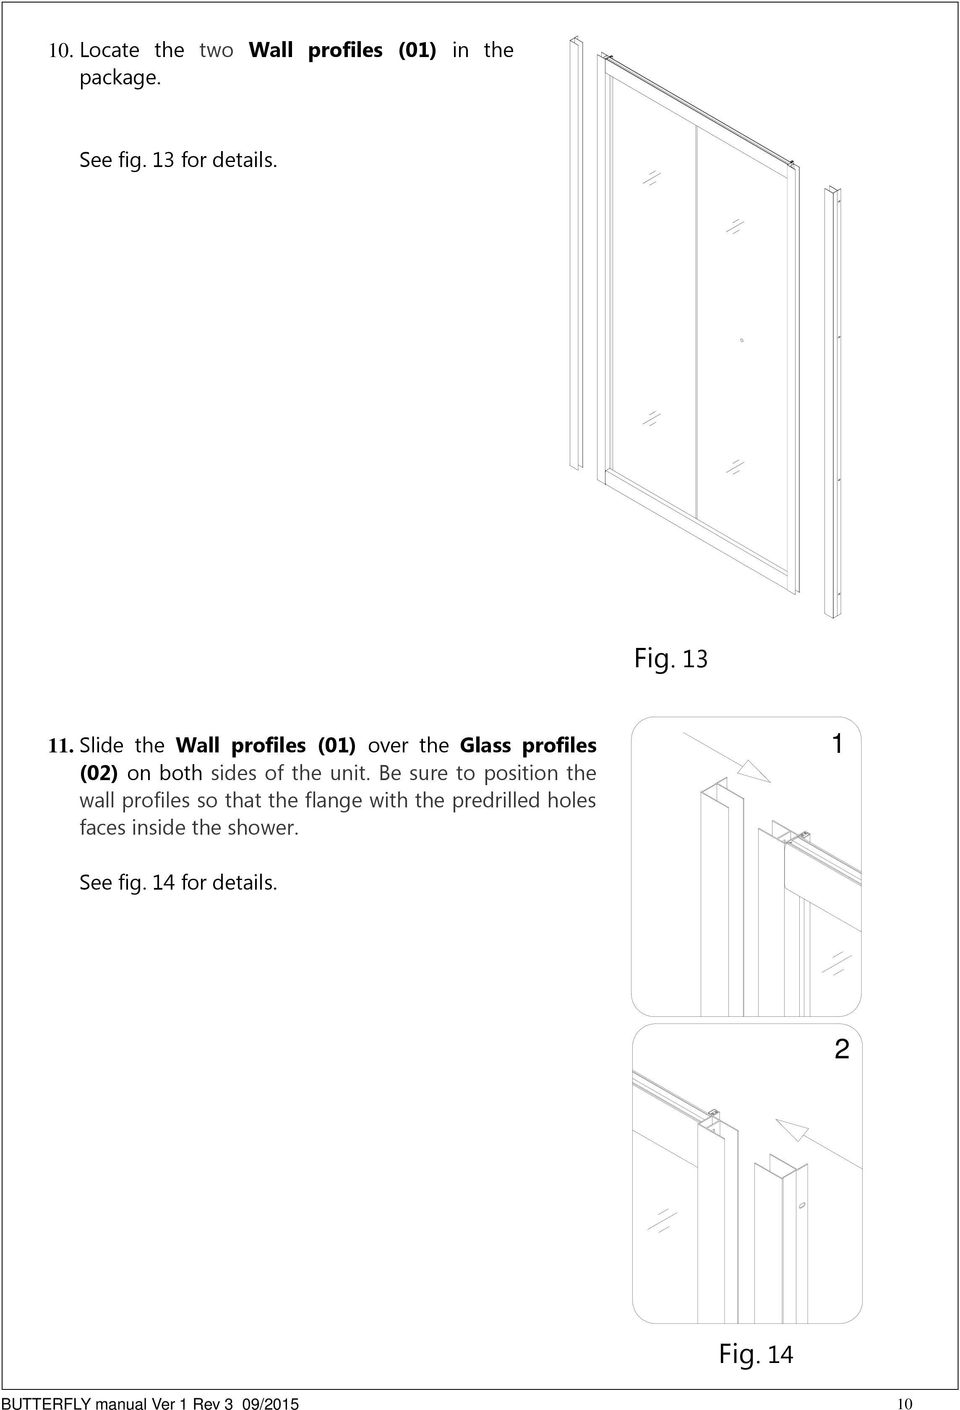 Slide the Wall profiles (0) over the Glass profiles (0) on both sides of the unit.